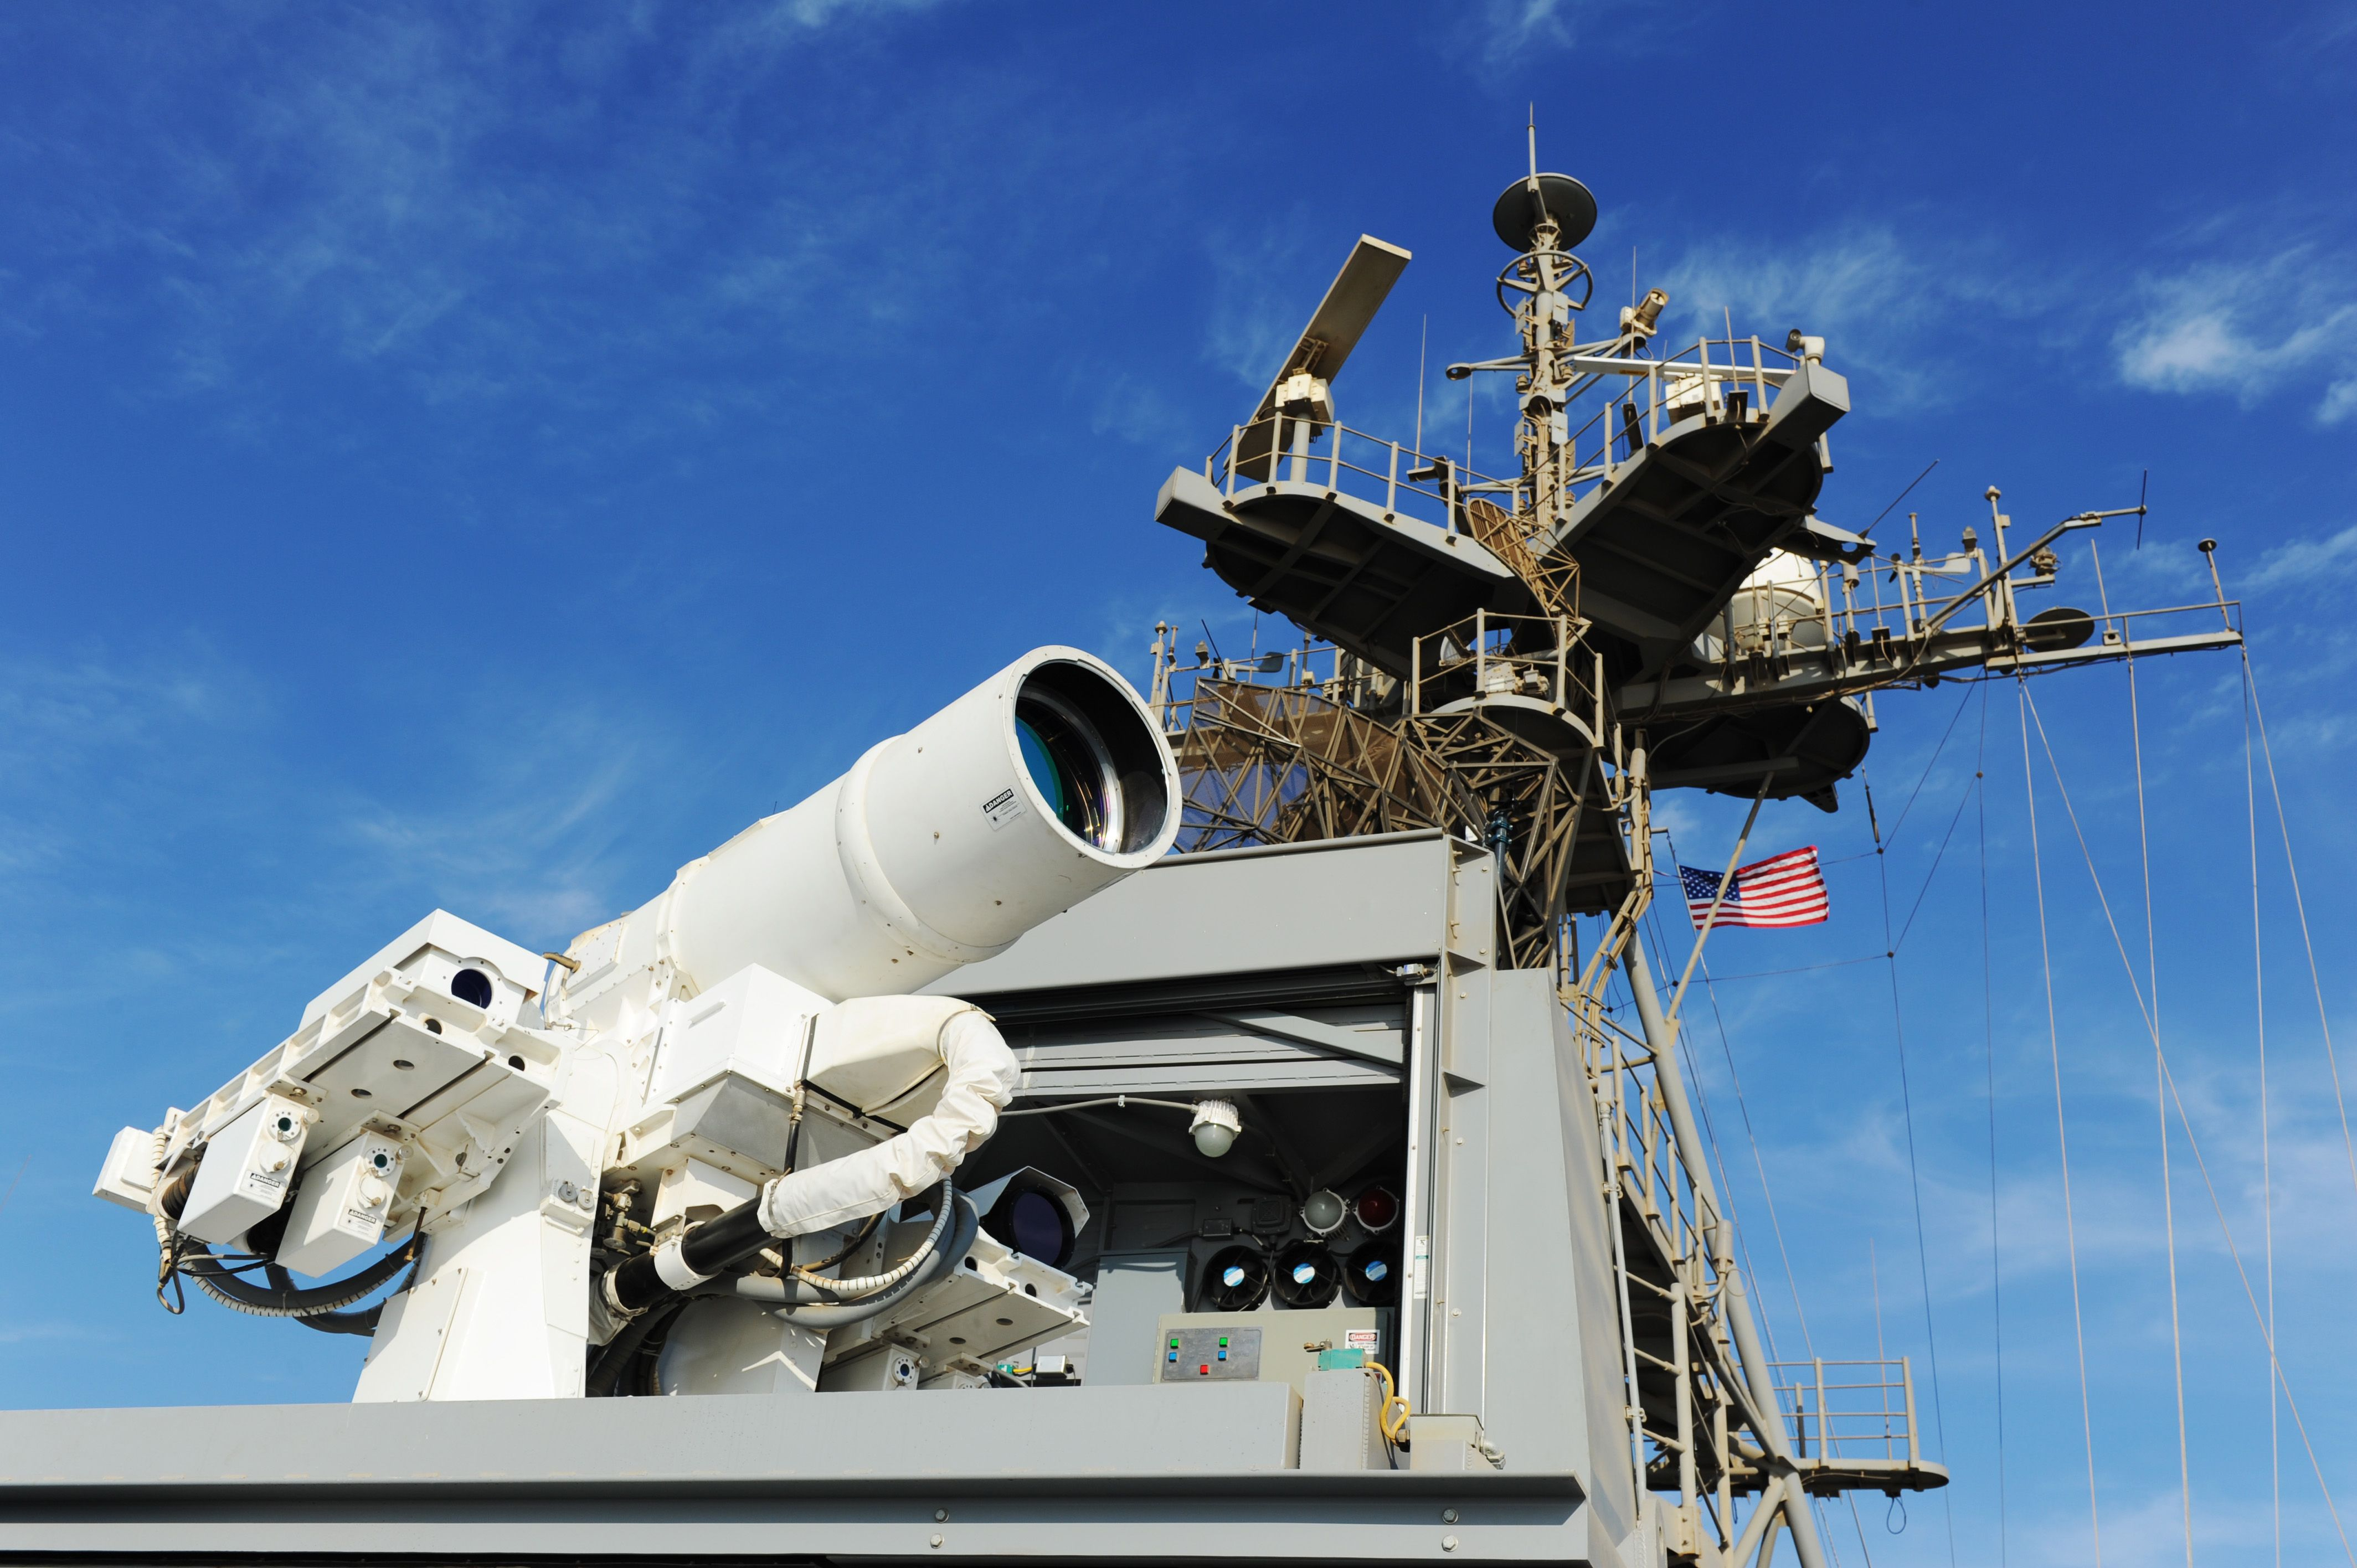 A photo shows a laser weapon (which looks like a thick telescope) mounted to the USS Ponce.